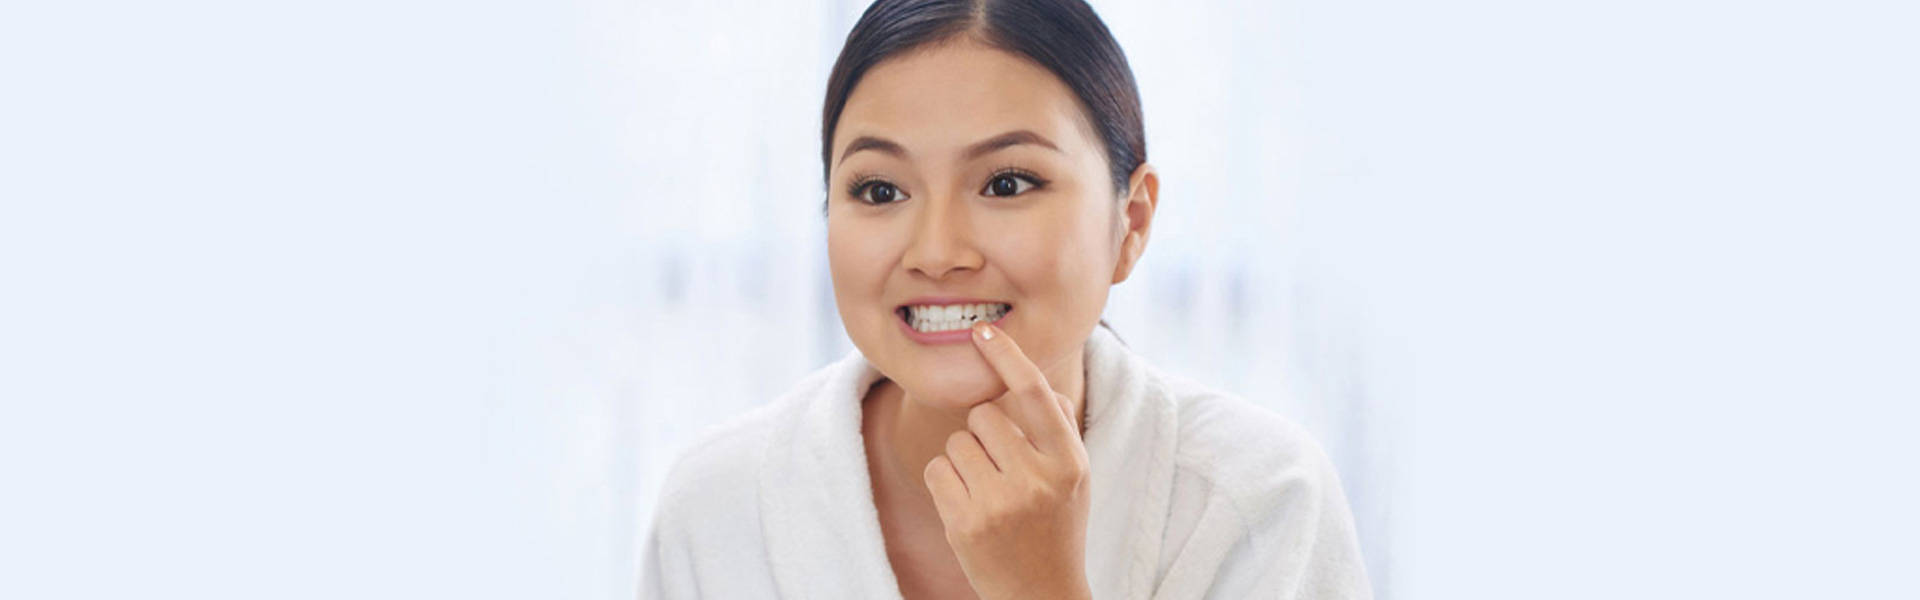 Periodontal Therapy 101: Everything You Need to Know